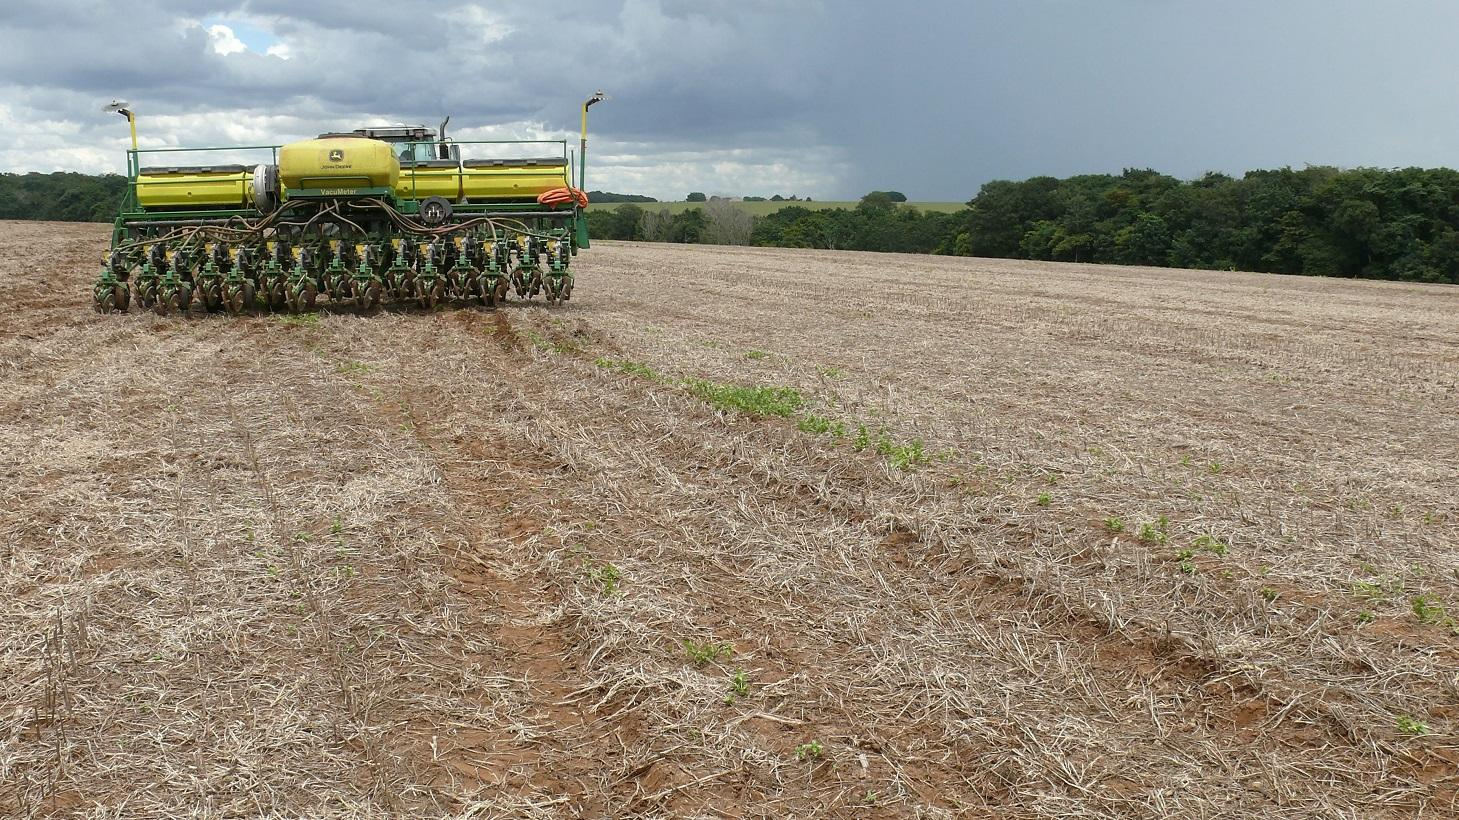 Large-scaled minimum-tillage soy/corn agriculture in the typical agroscape of central Brazil.